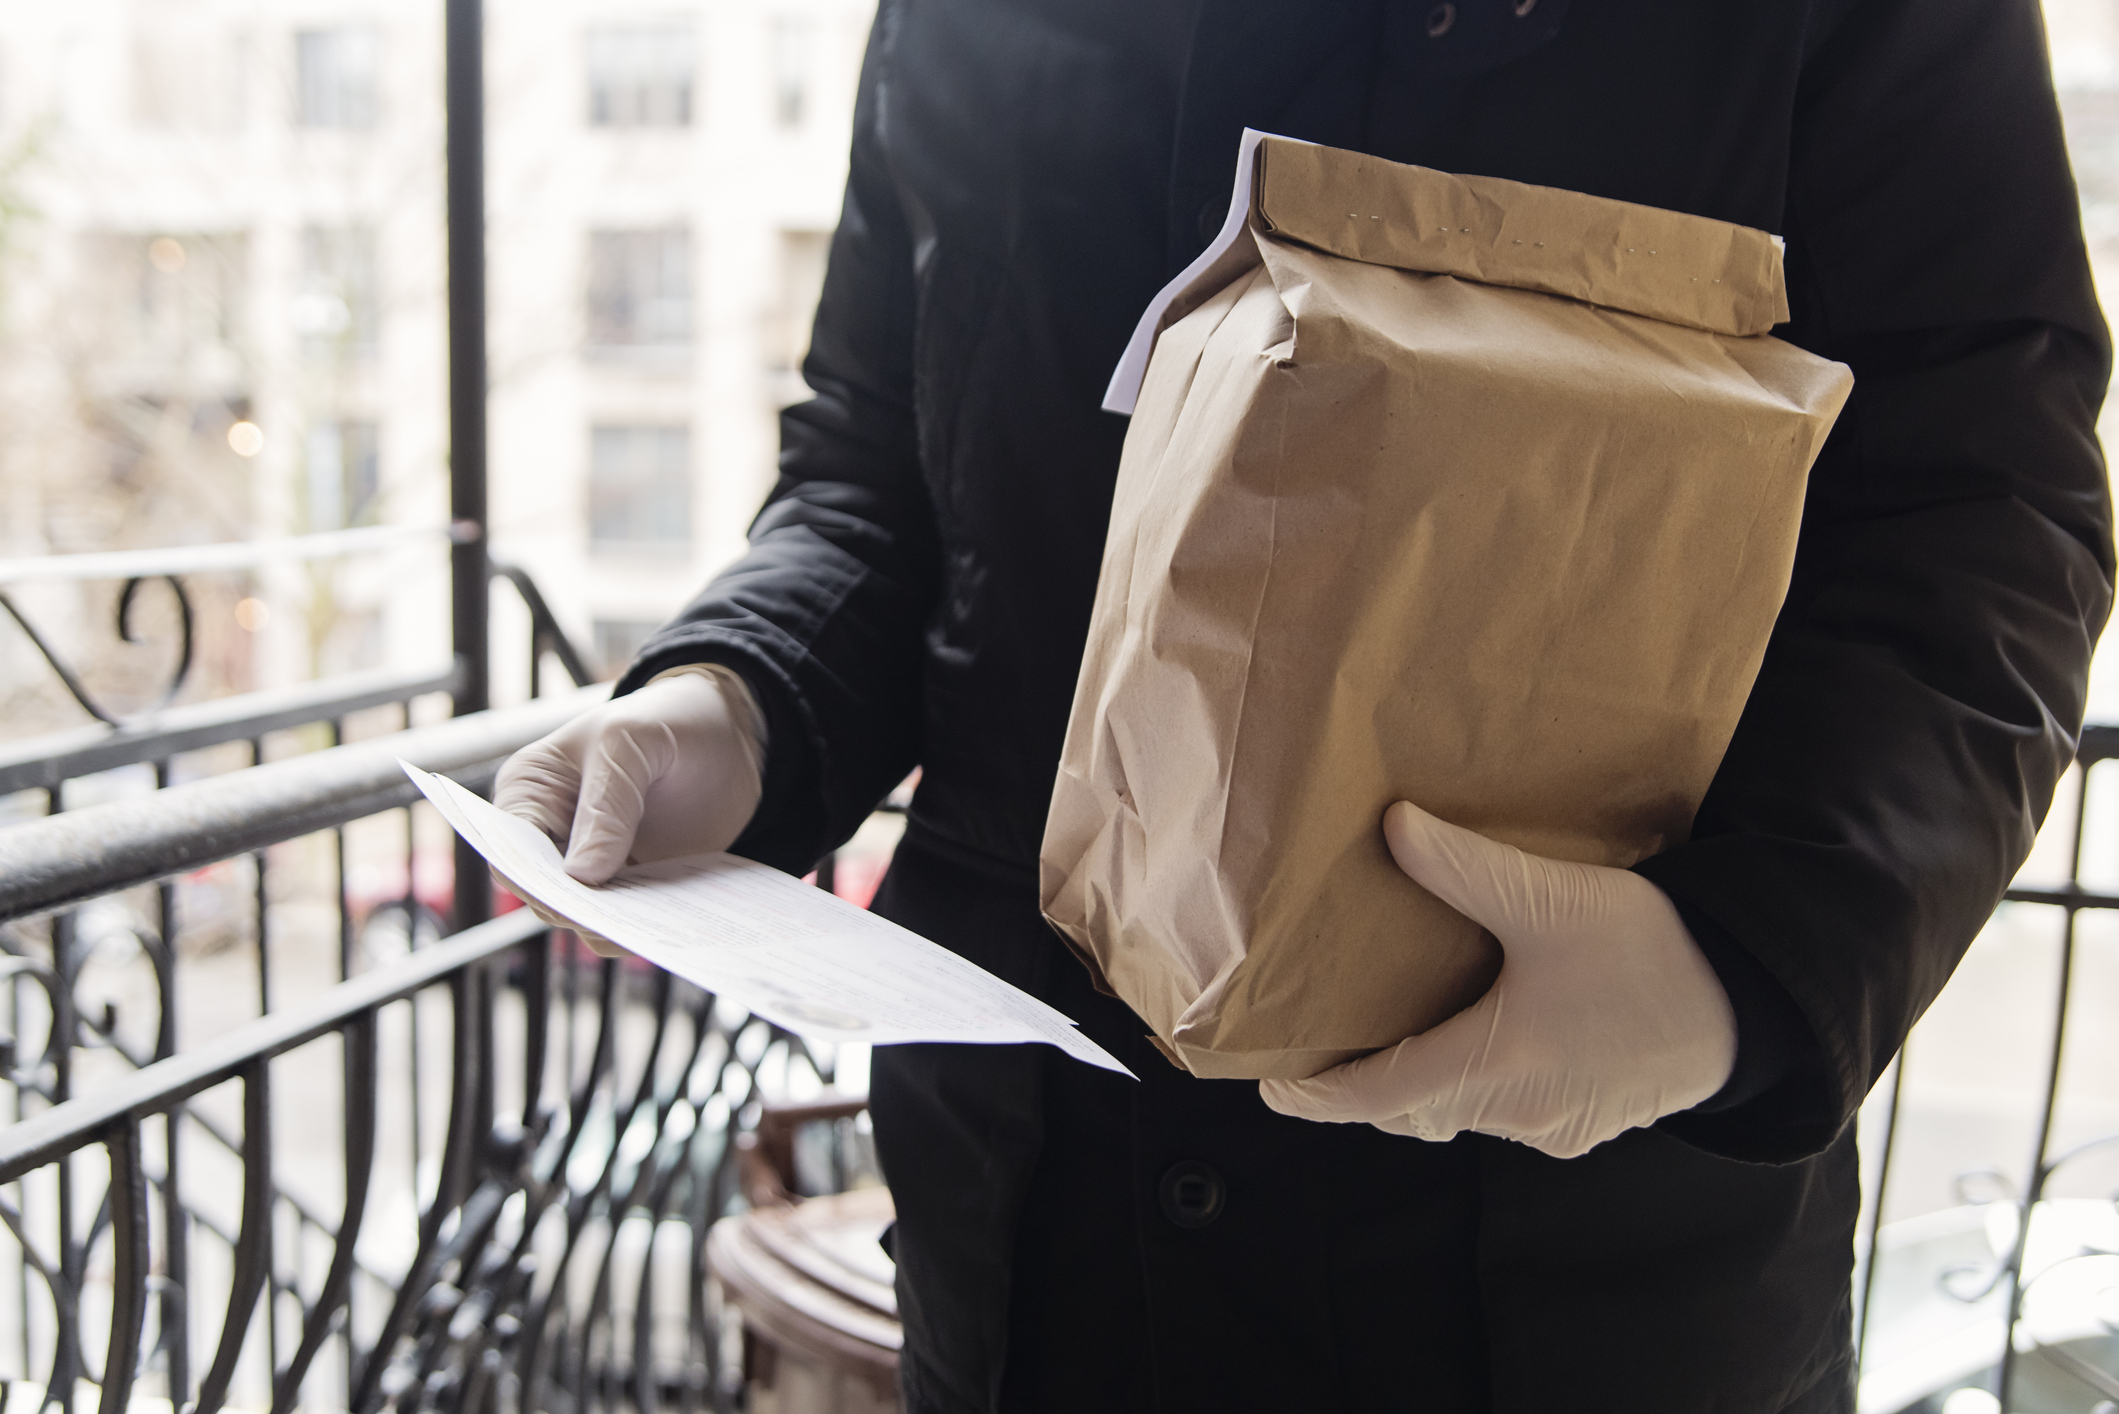 How Safe Is It To Order Takeout Right Now?